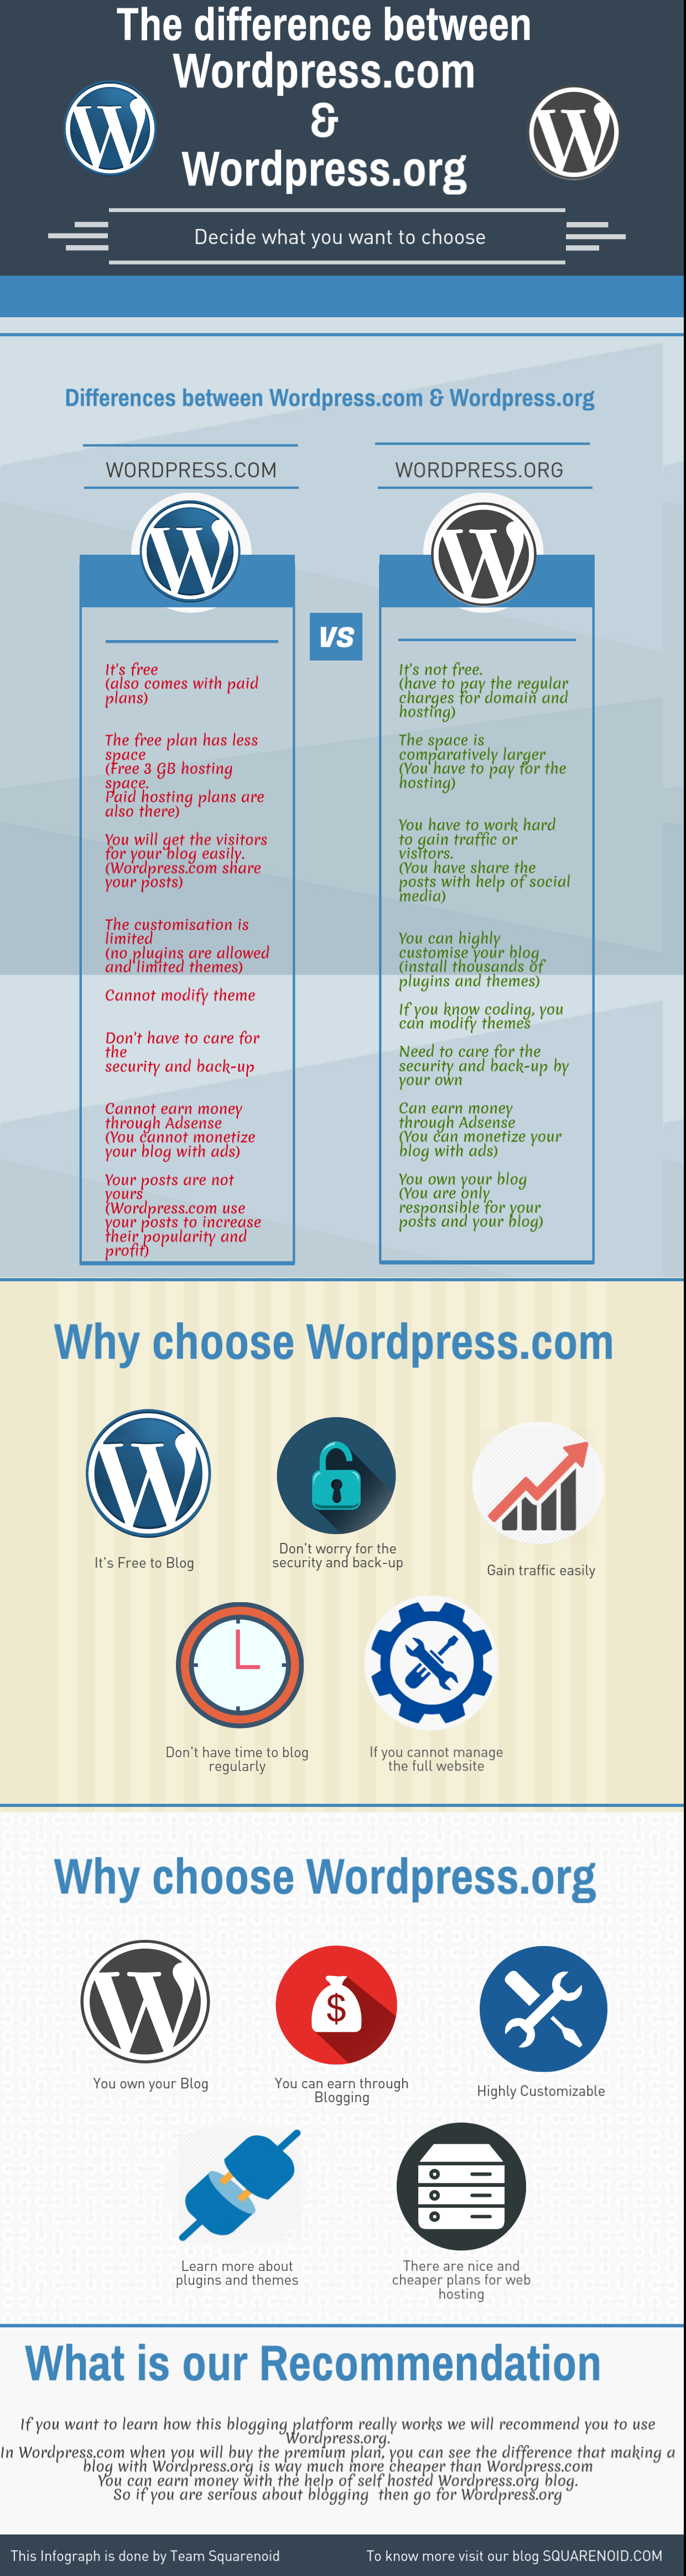 infograph-wordres.com-vs-wordpress.org